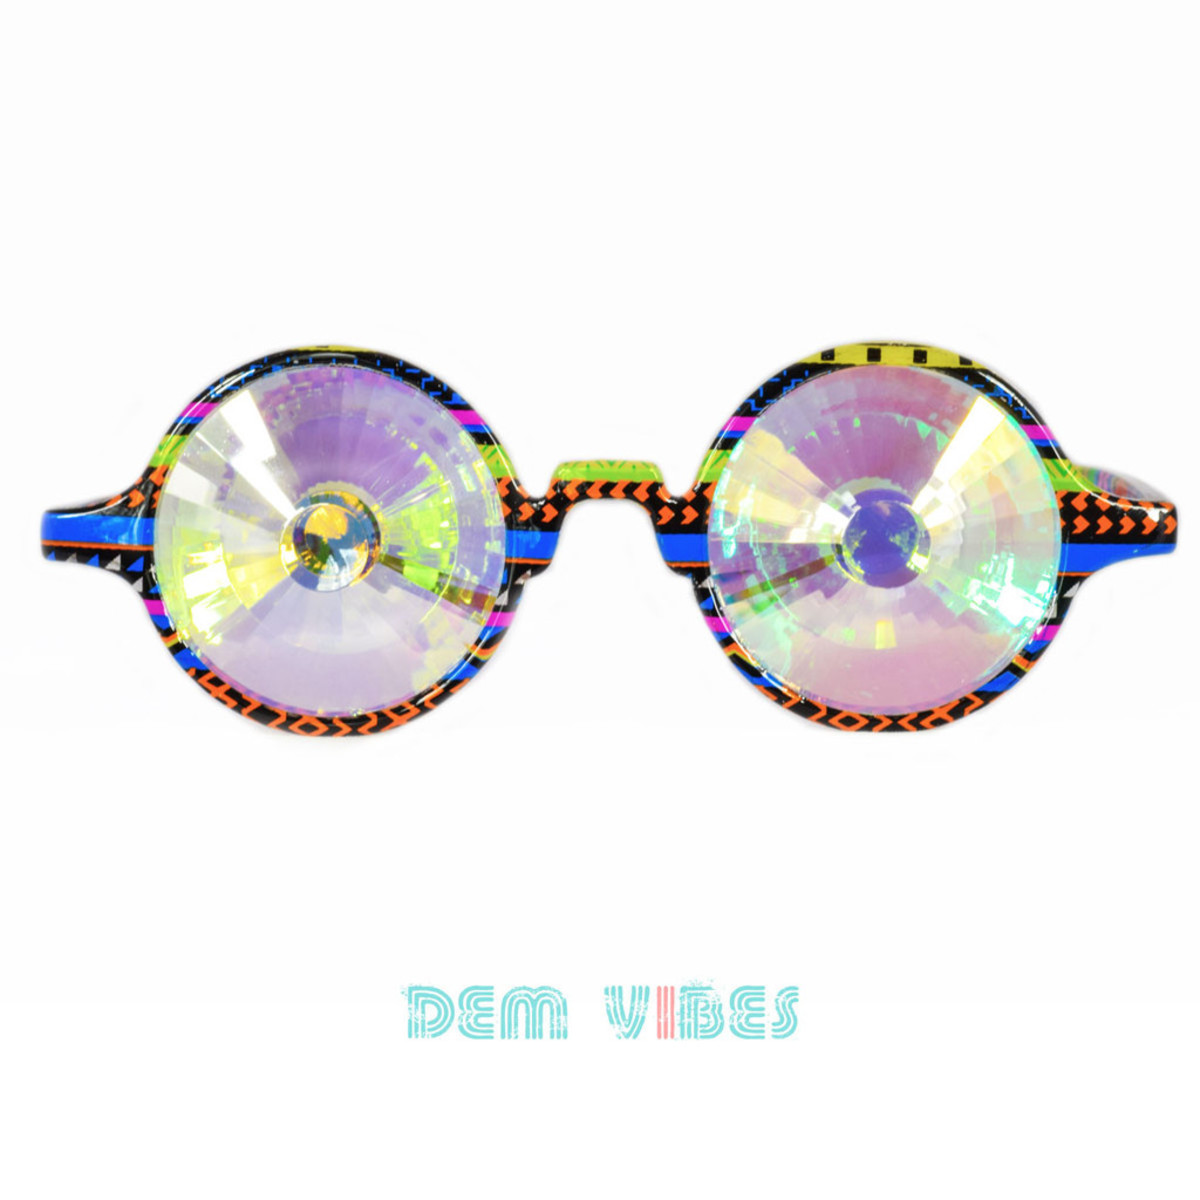 Dem Vibes Rainbow glasses